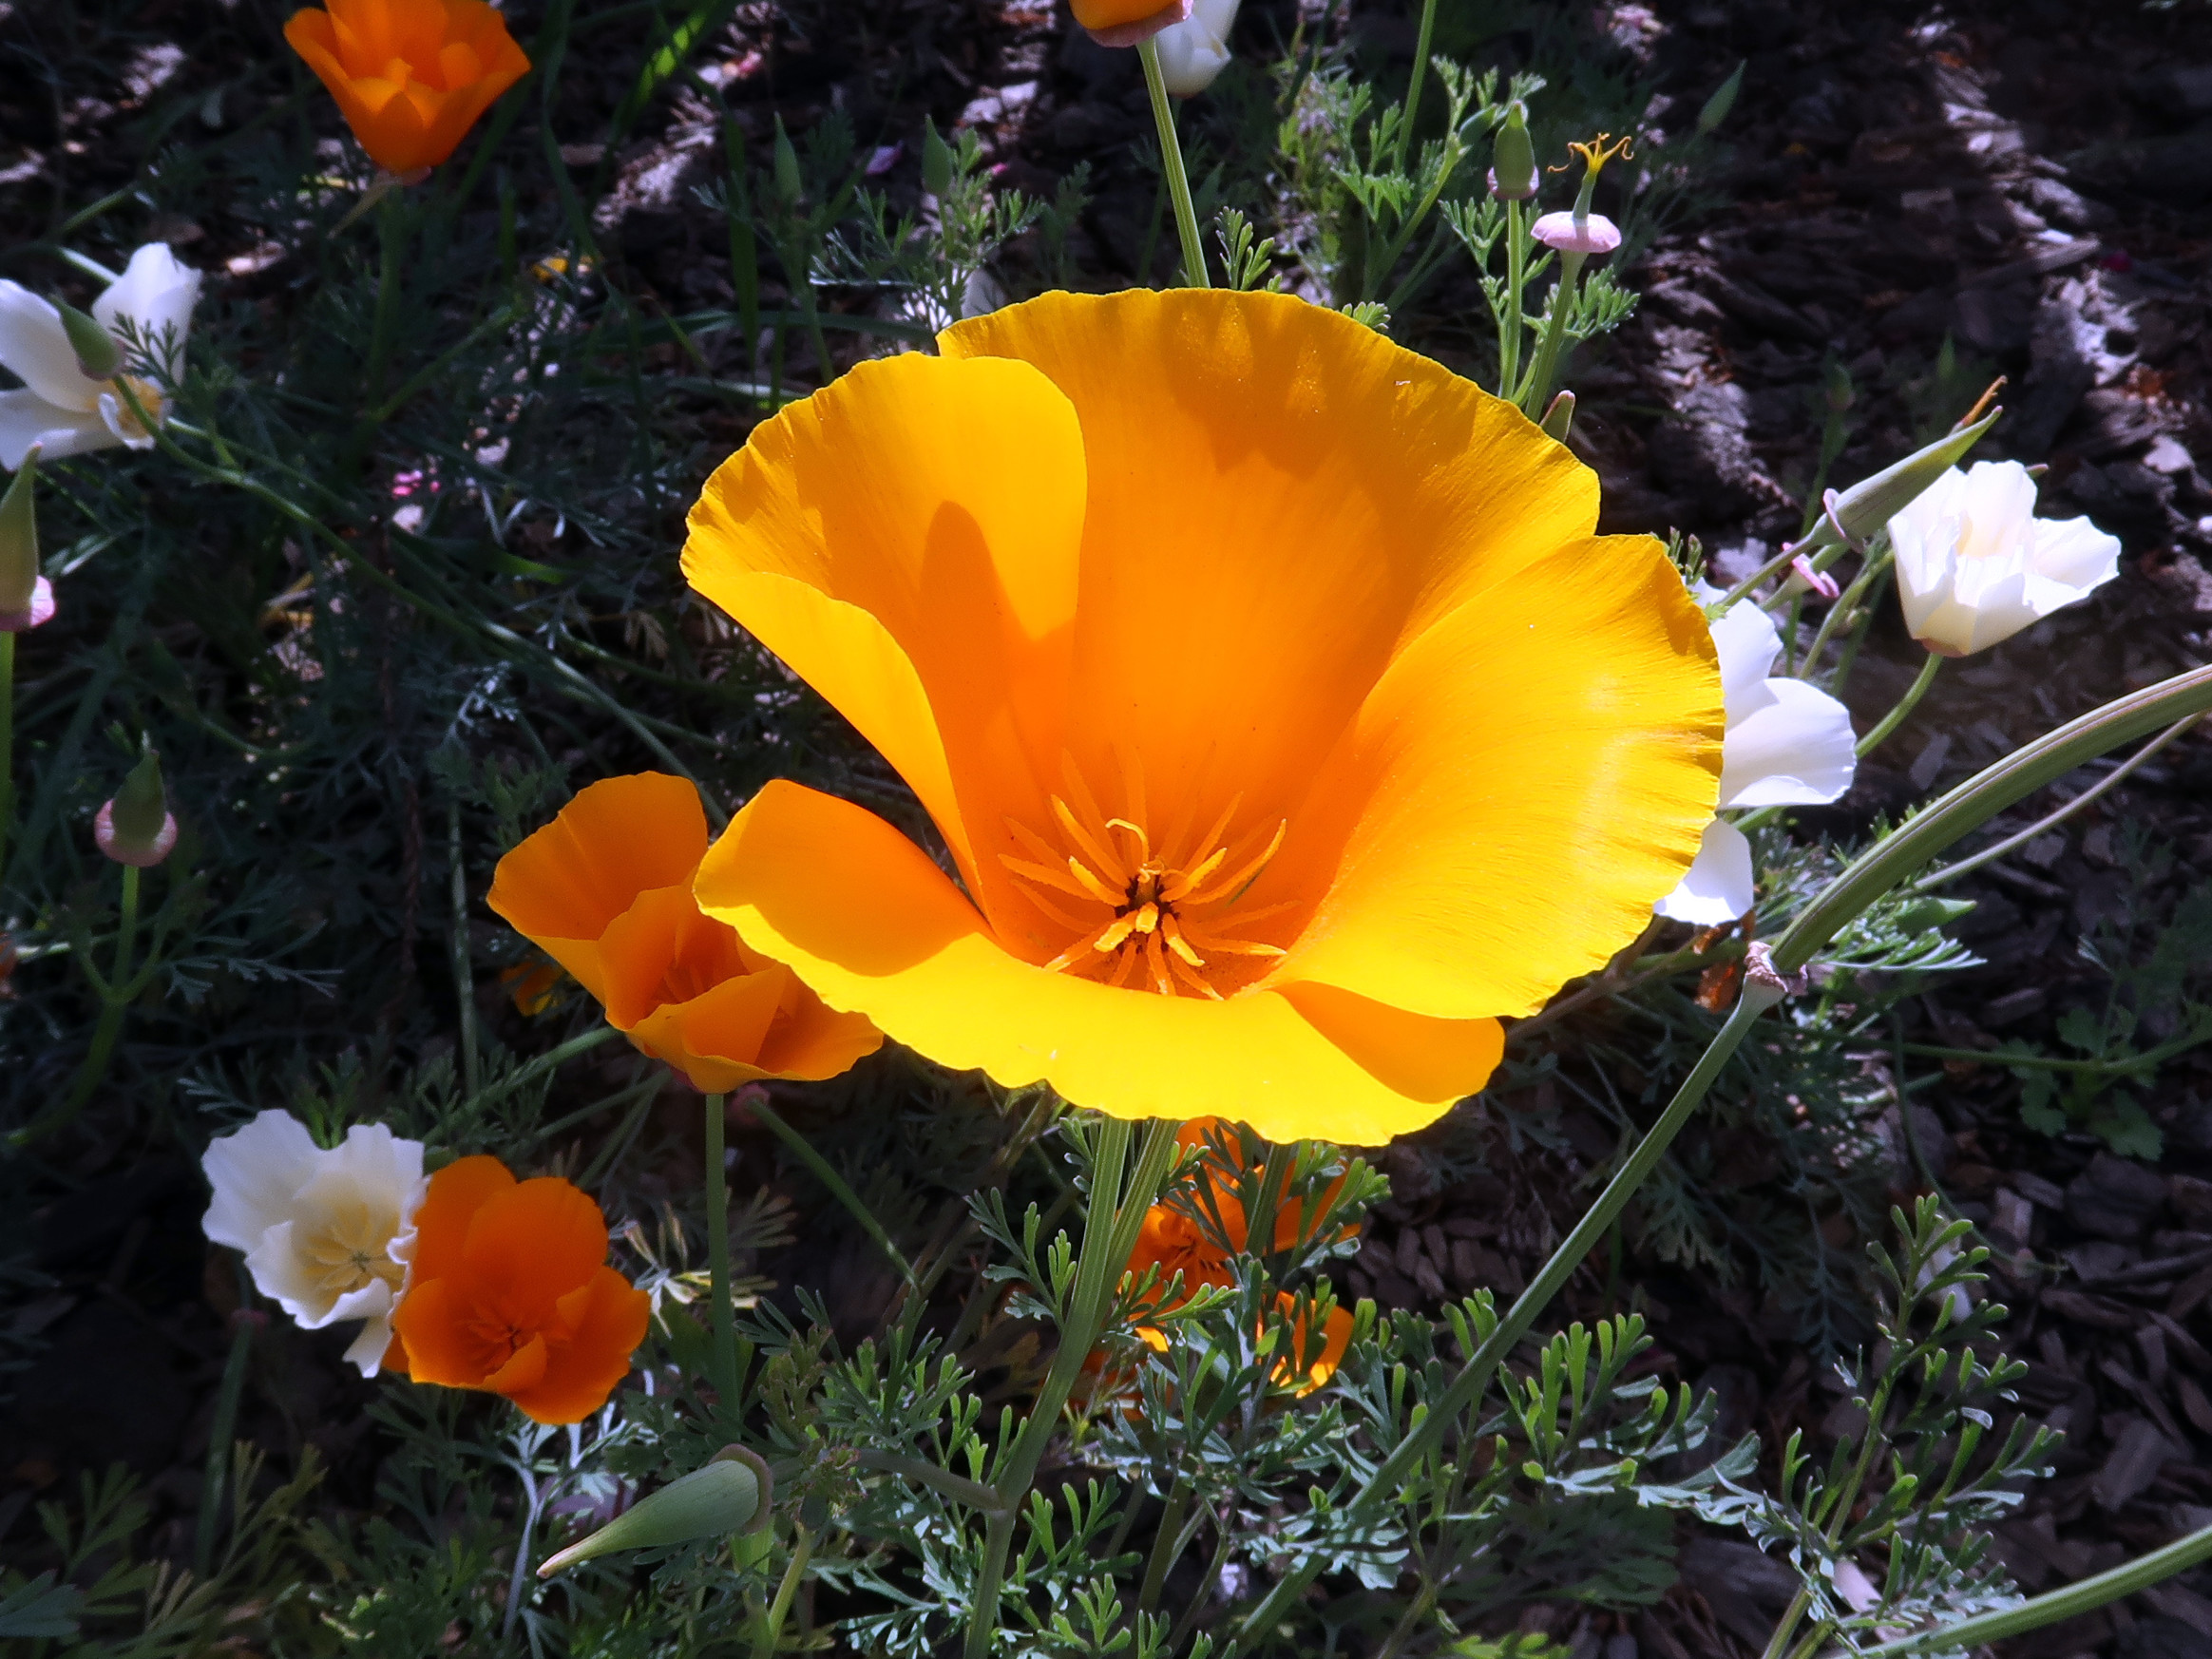 California Poppies in Willits, California - note the white flowers; they are a natural variation